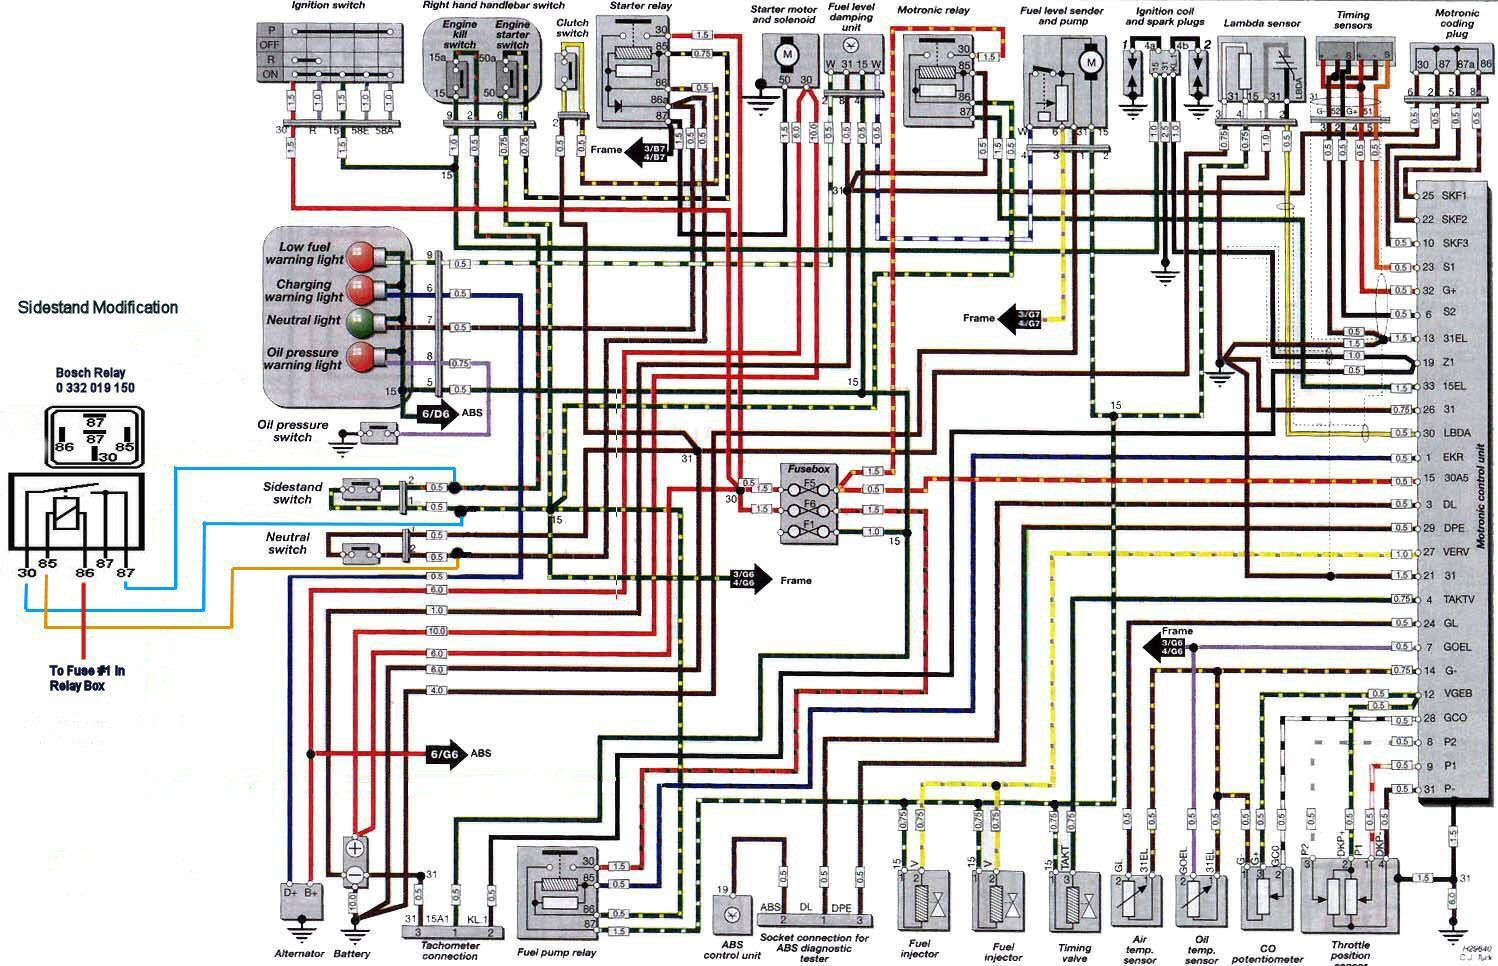 cfa26548fff674929dbaca6a9b06c2b3 bmw r1150r electrical wiring diagram 1 bmv pinterest bmw r100rs gauge wiring diagram at honlapkeszites.co